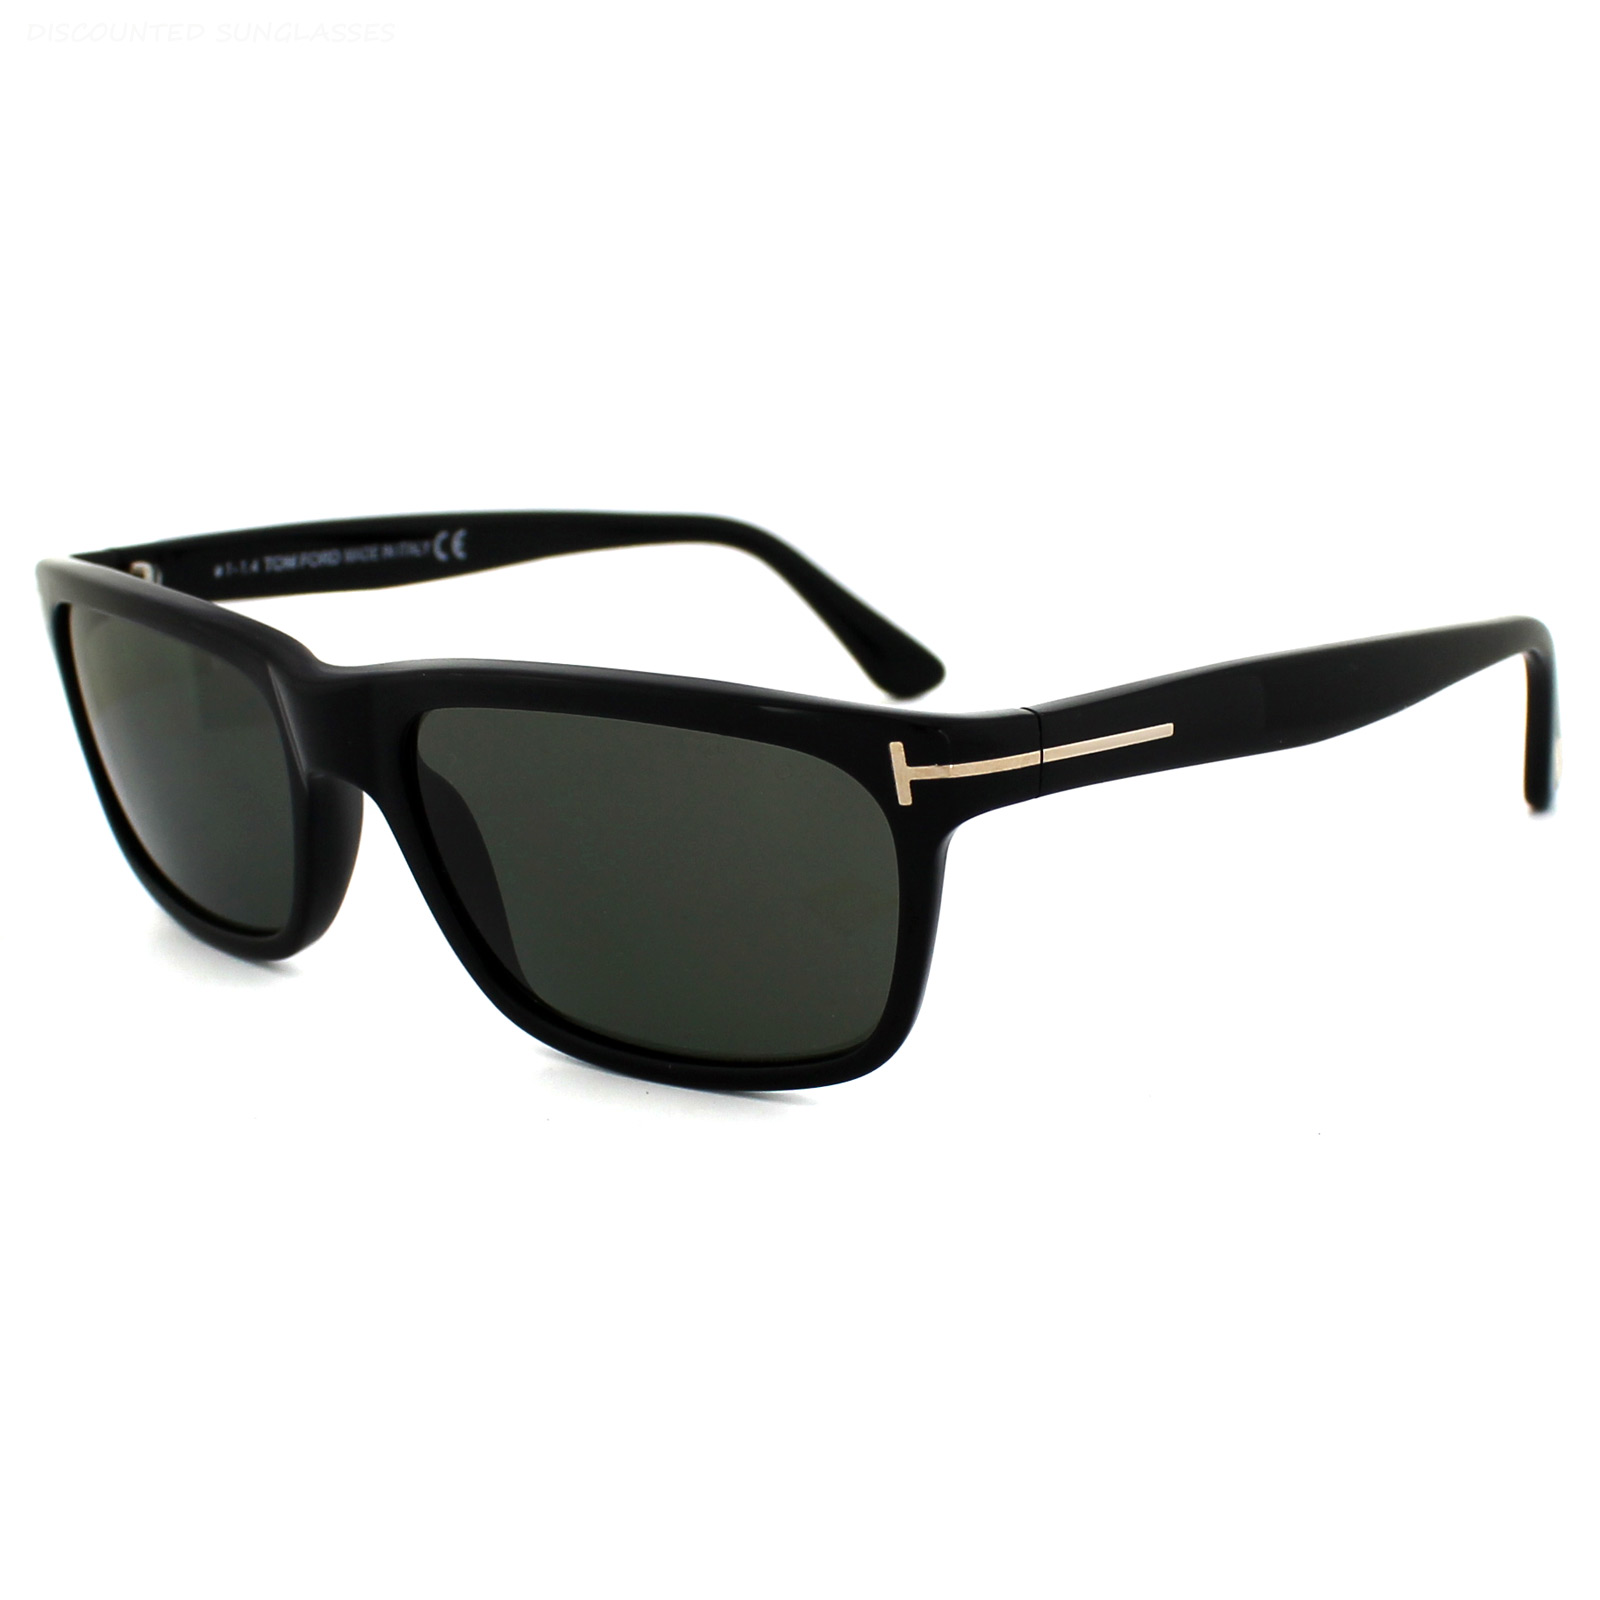 Polarized Sunglasses Hugh 0337 Shiny About Ford Black 01n Details Green Tom dCBroeWx